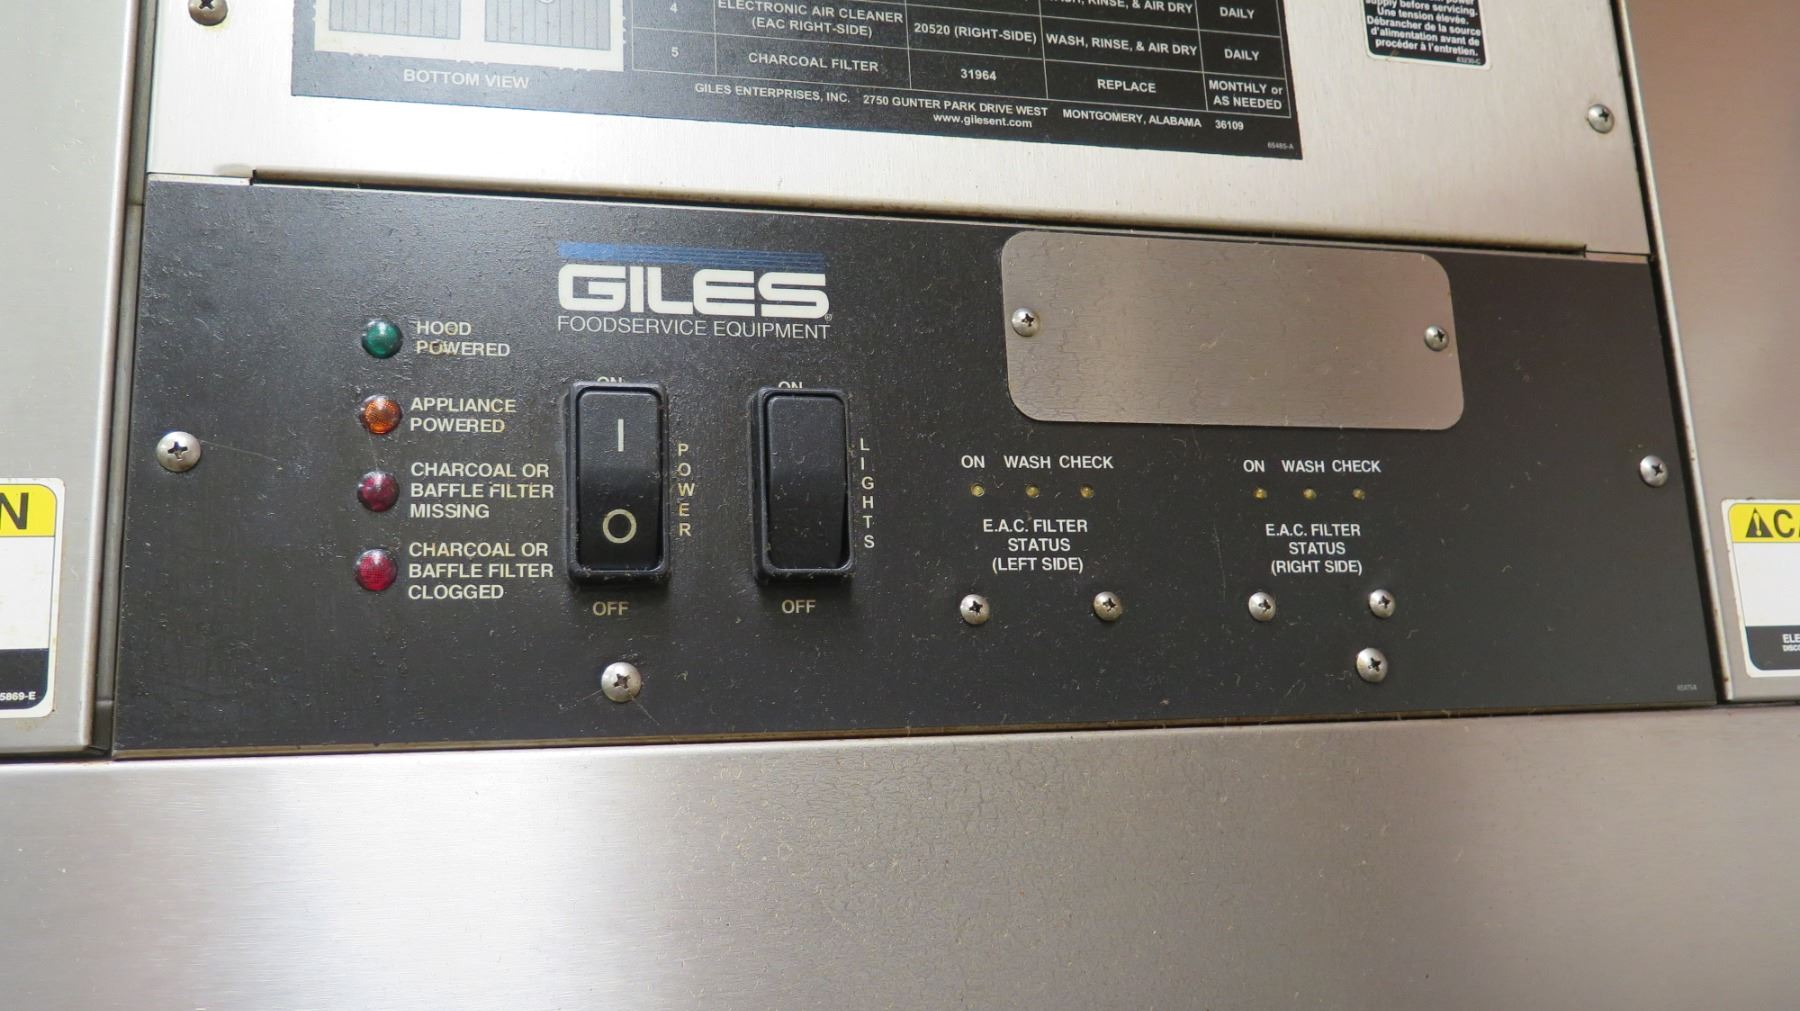 giles foodservice air filtration